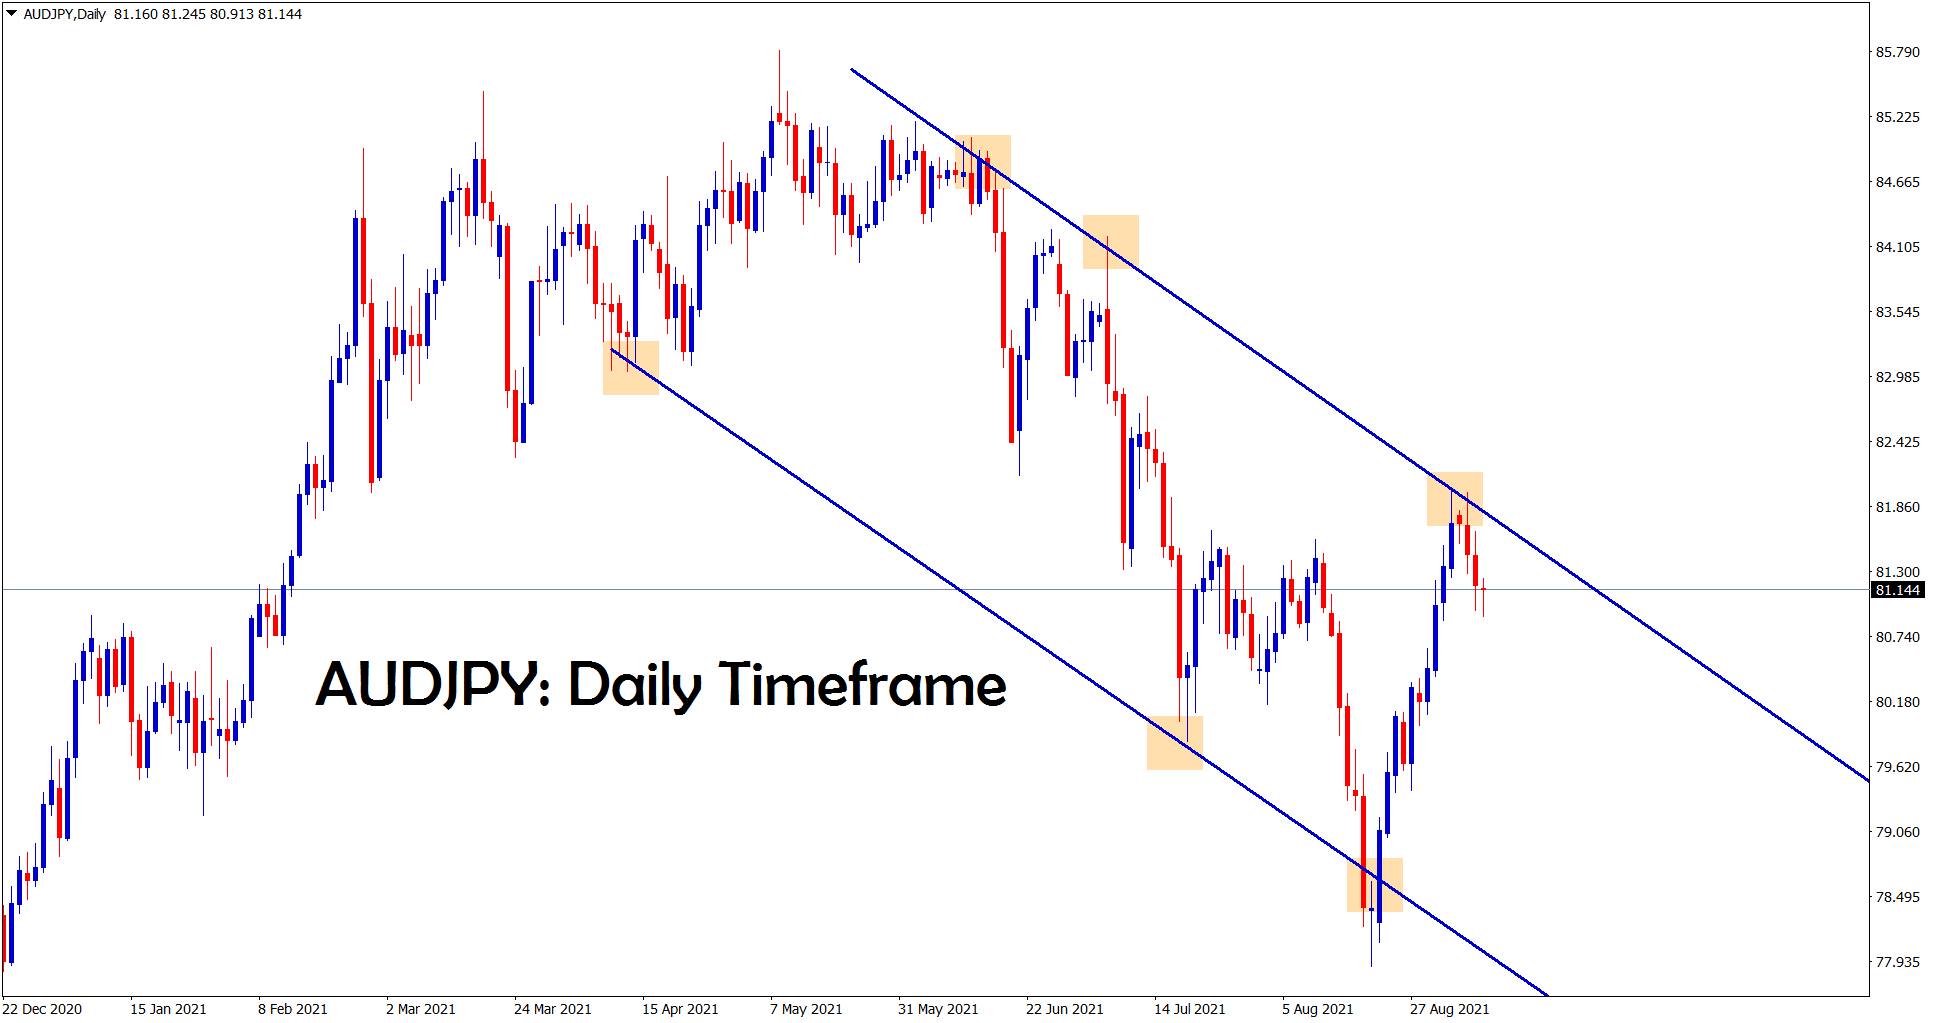 AUDJPY is falling from the lower high of the downtrend line